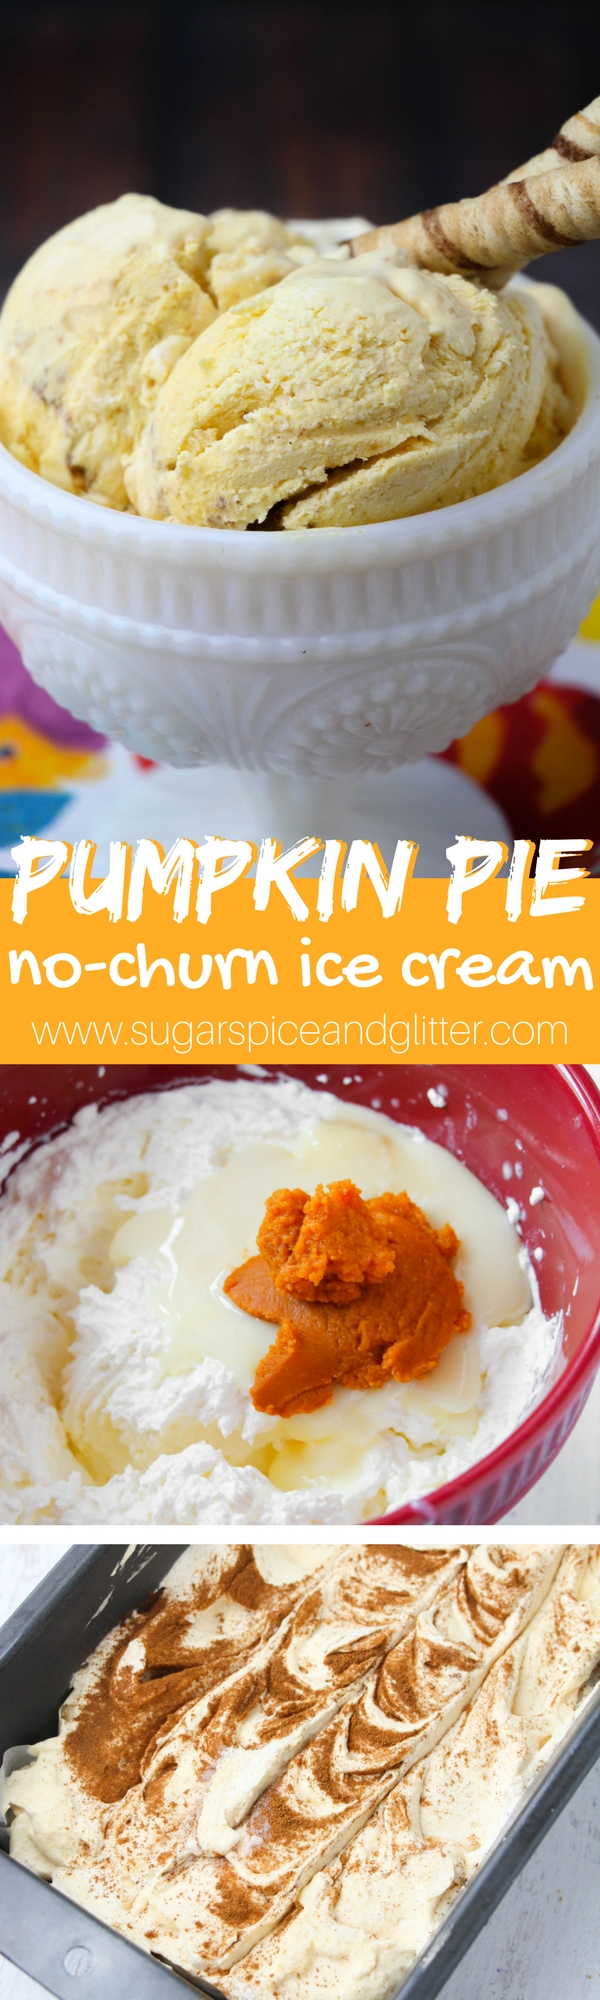 No-Churn Pumpkin Pie Ice Cream that's easier than pie! This easy homemade ice cream can be whipped up in less than 10 minutes without an ice cream machine, making it the perfect low-fuss Thanksgiving dessert